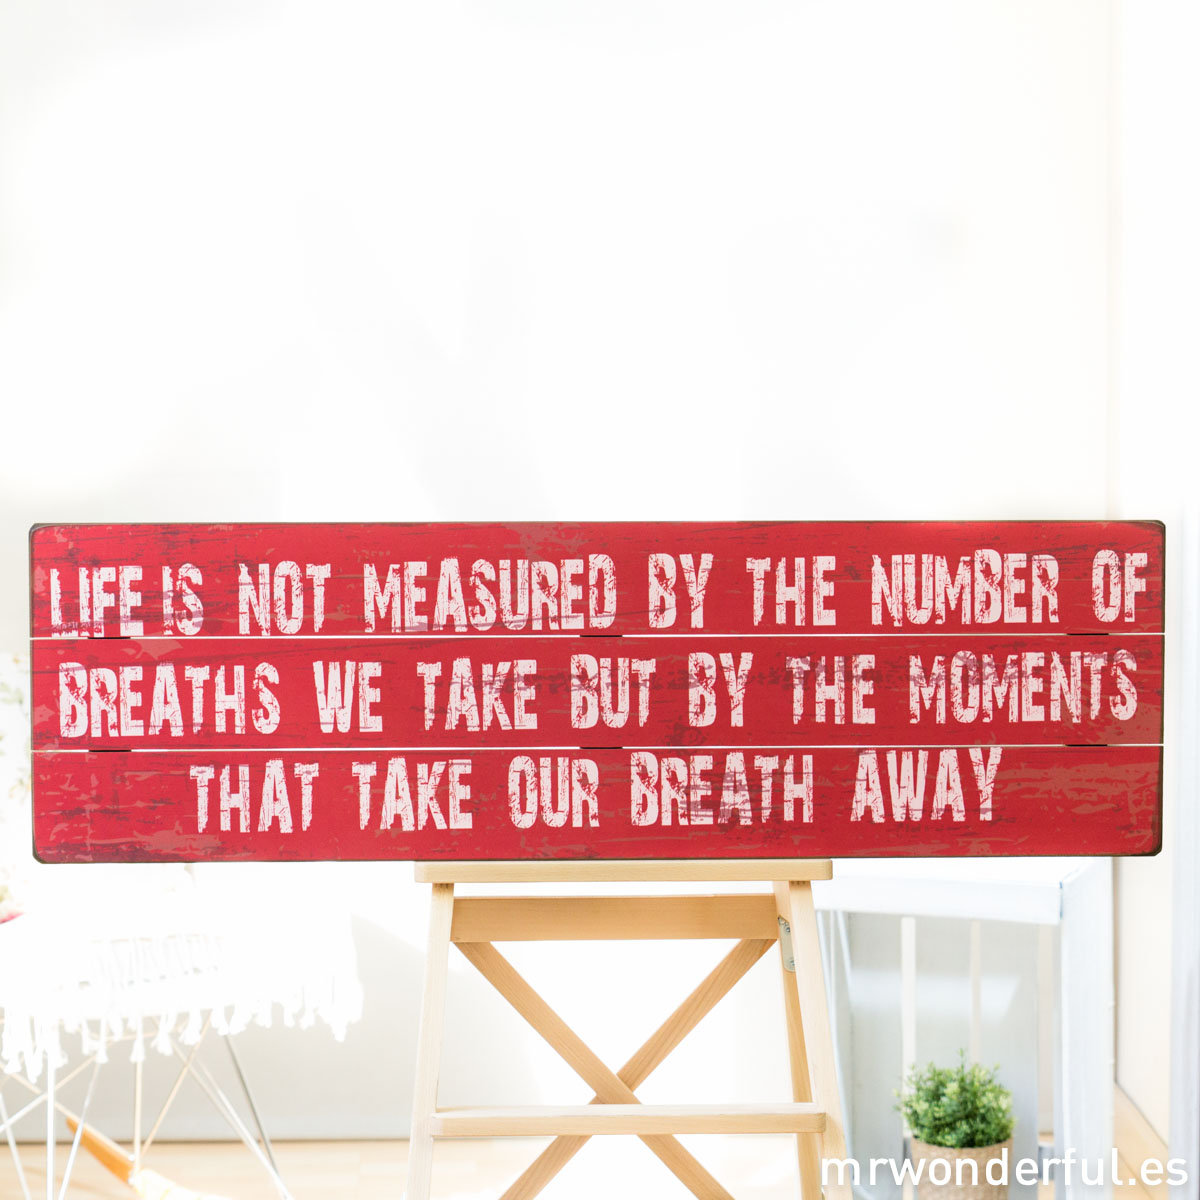 mrwonderful_GI6008_2_letrero-madera-grande_breath-away-2